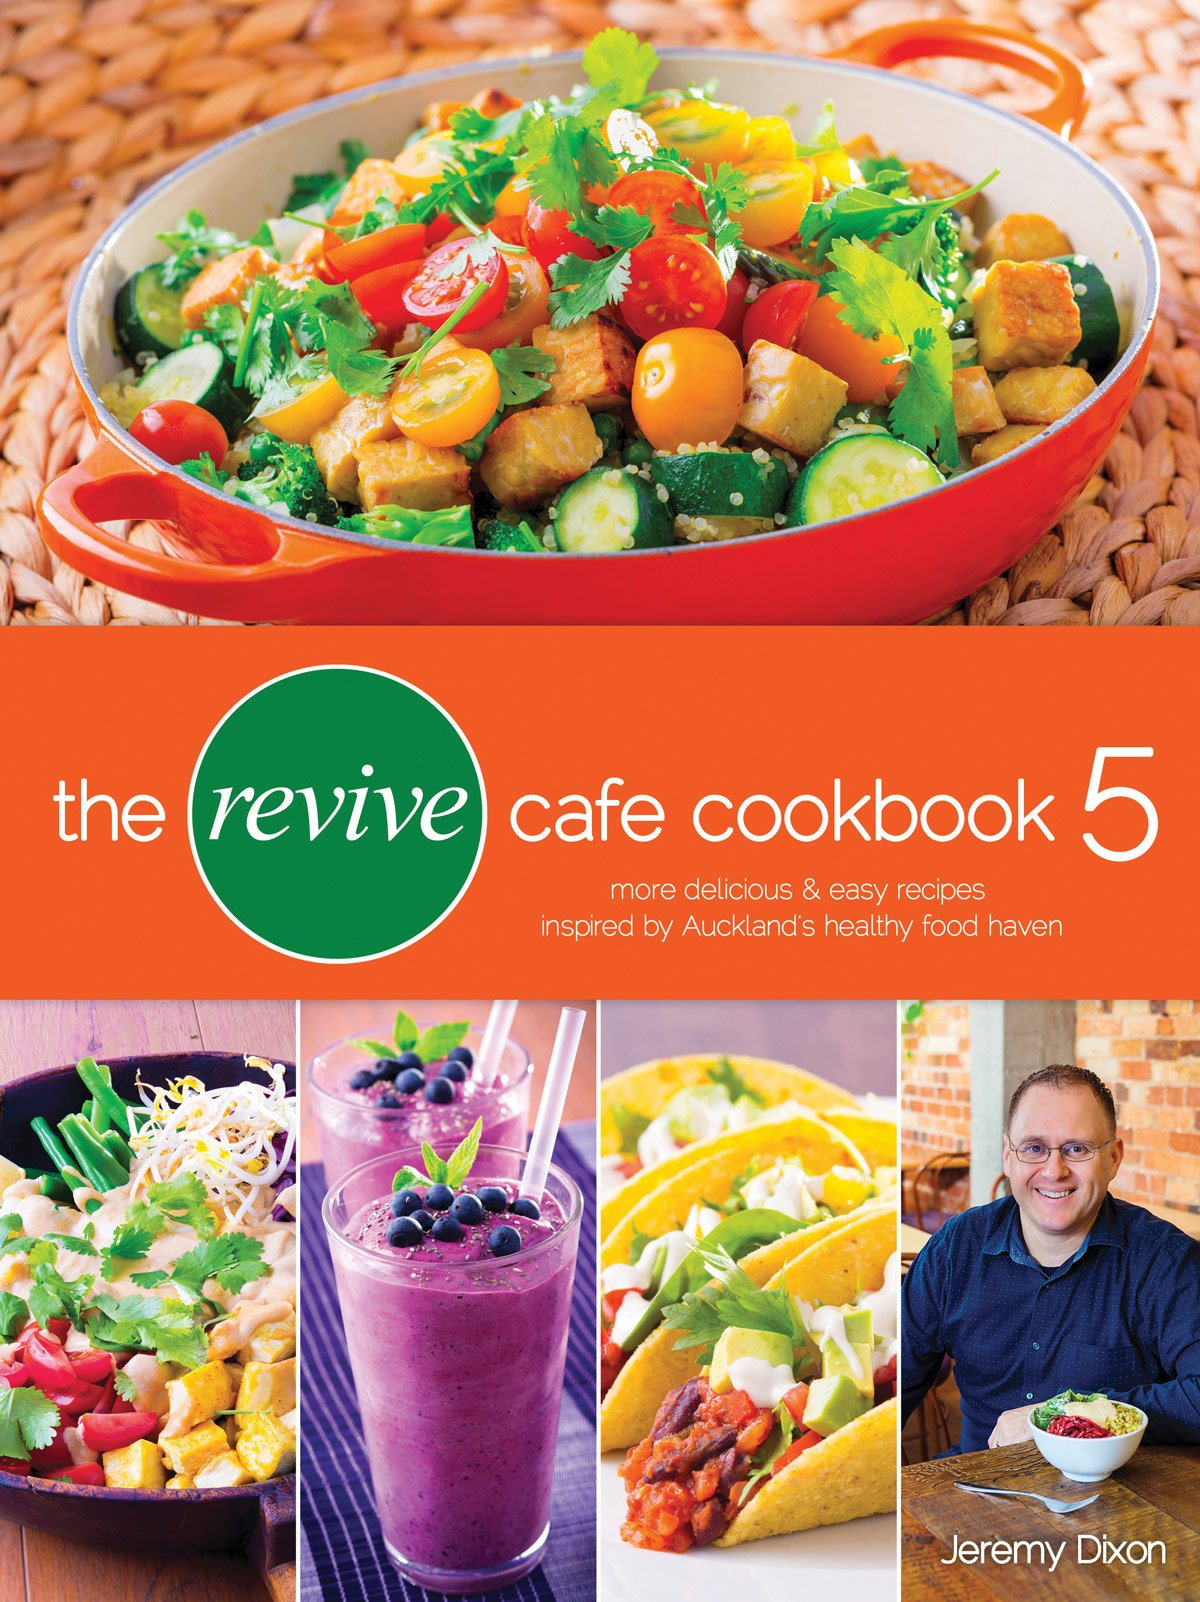 The Revive Cafe Cookbook Delicious And Easy Recipes From Aucklands Healthy Food Haven By Jeremy Dixon